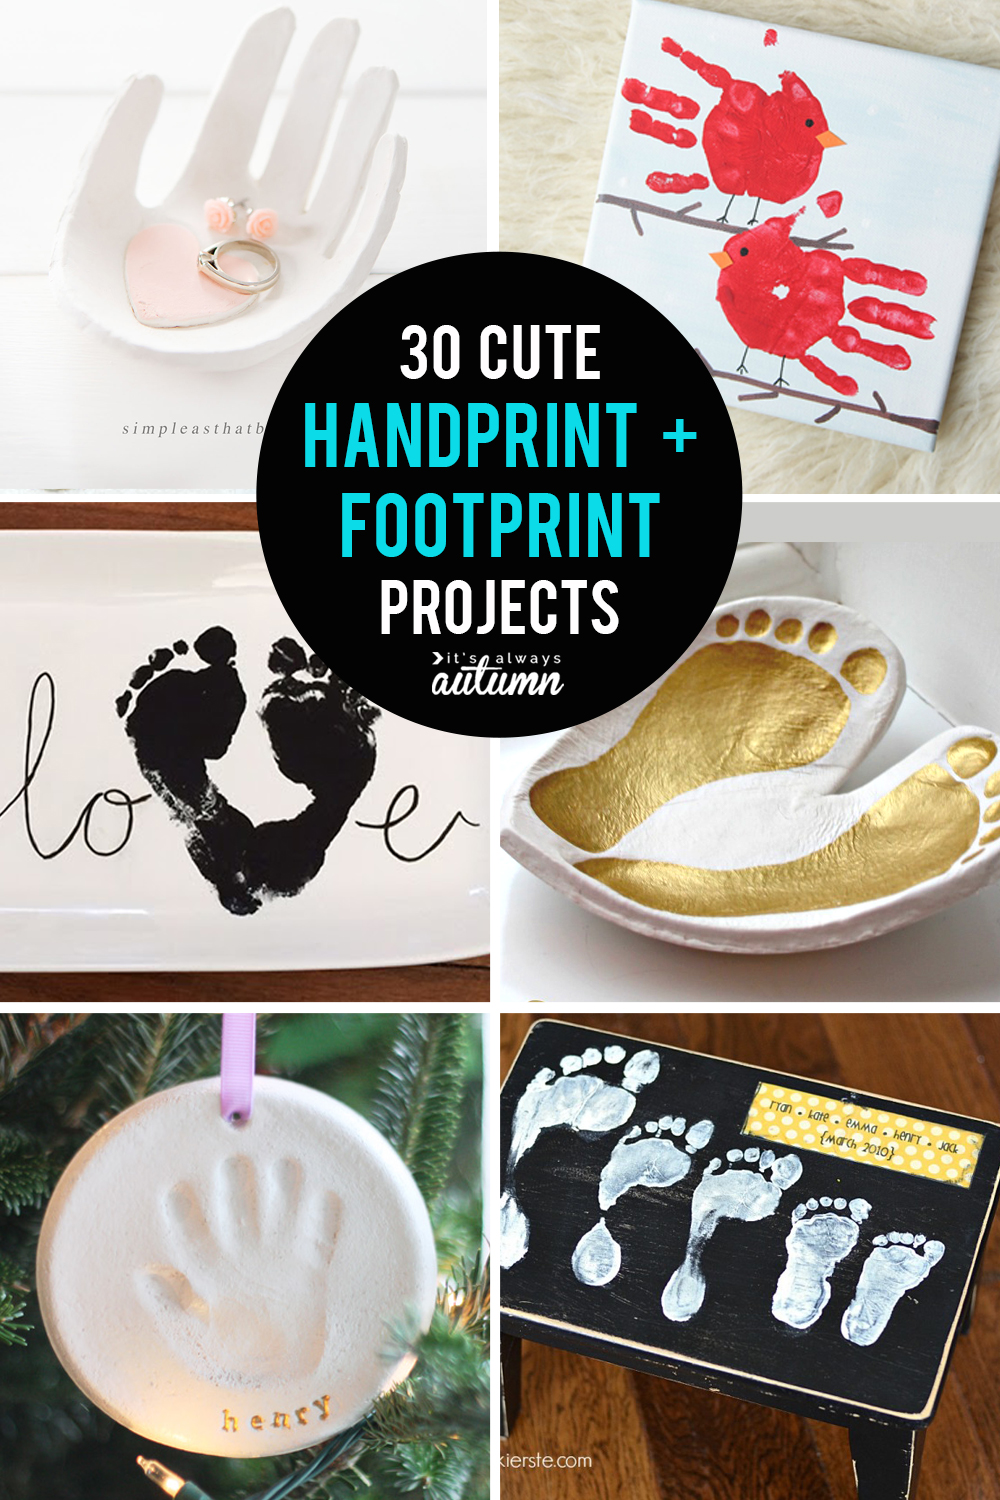 30 best handprint and footprint projects: handprint art, DIY gifts, keepsakes, and more!